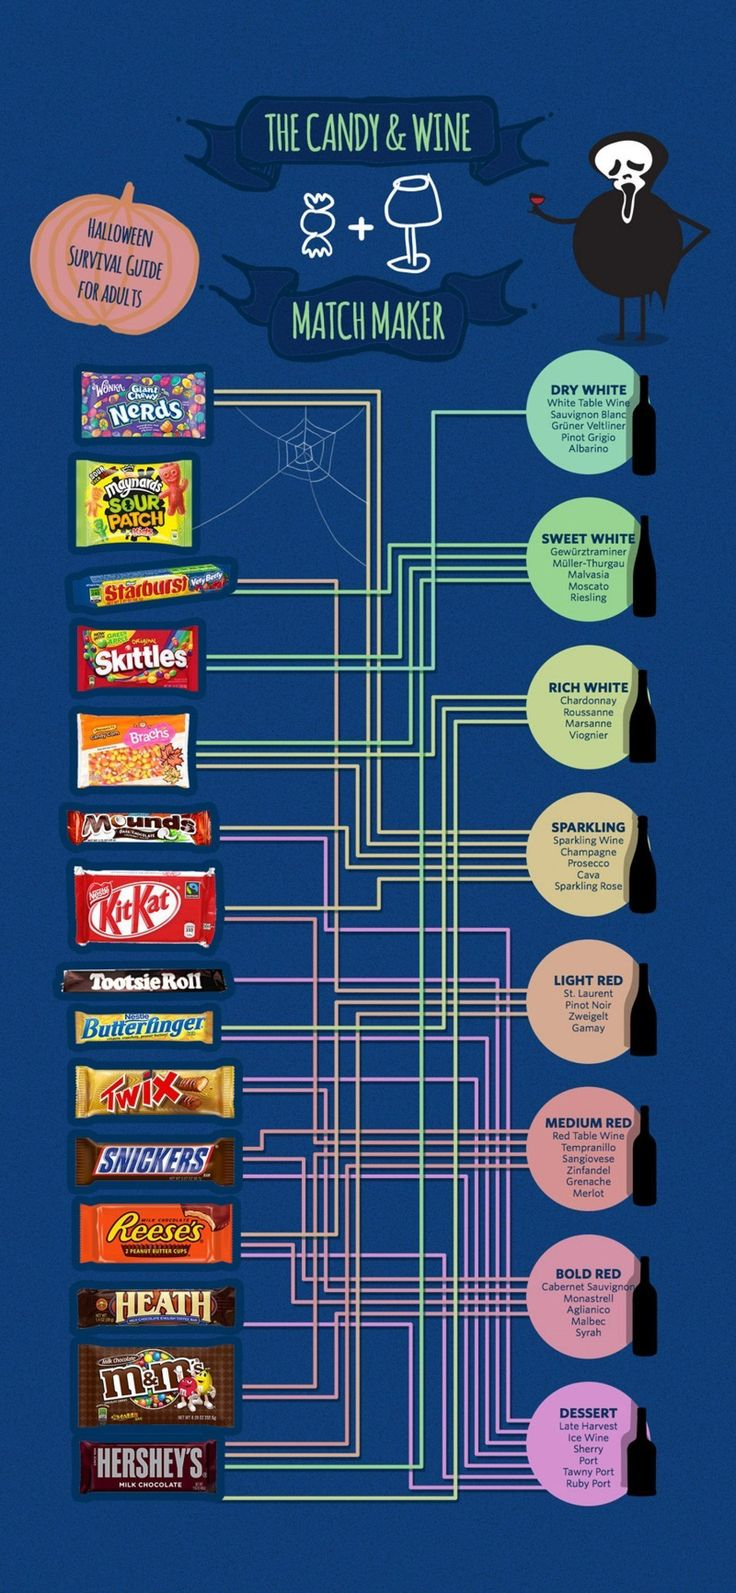 This Chart Will Help You Choose the Perfect Wine to Pair With Your Halloween Candy #wine #halloween #food #candy #winetasting #wineeducation